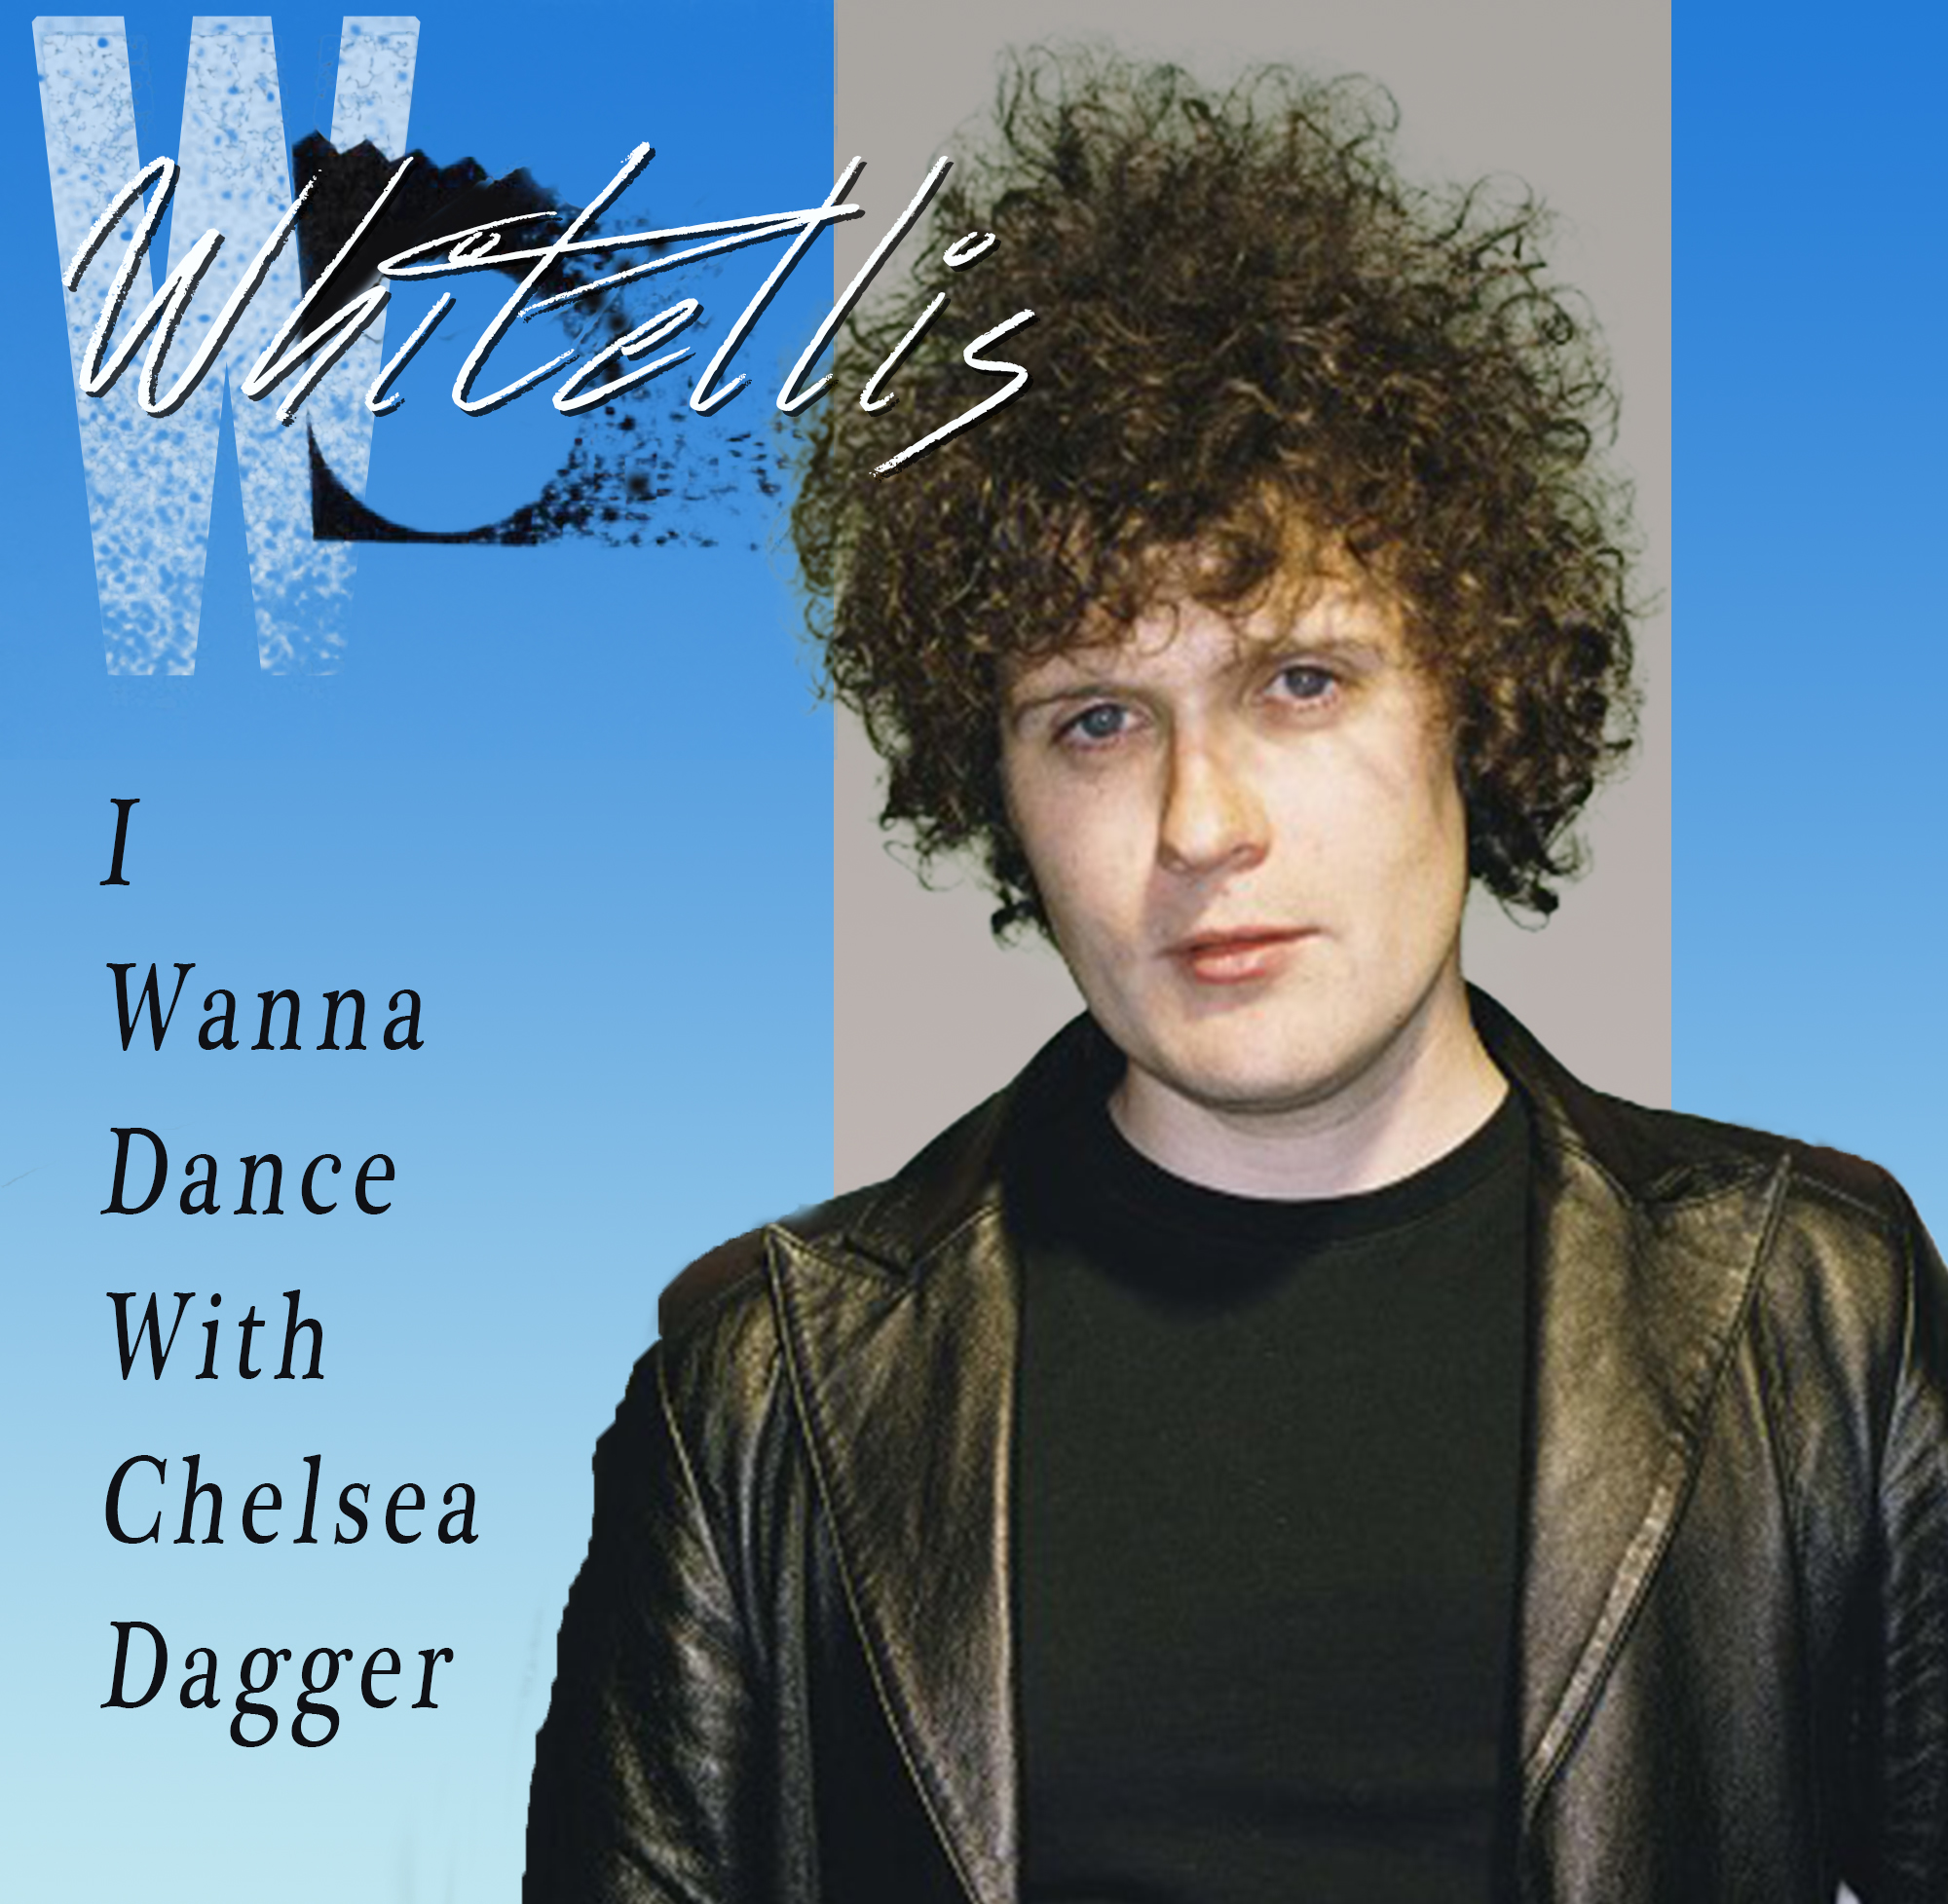 pomDeter - I Wanna Dance With Chelsea Dagger